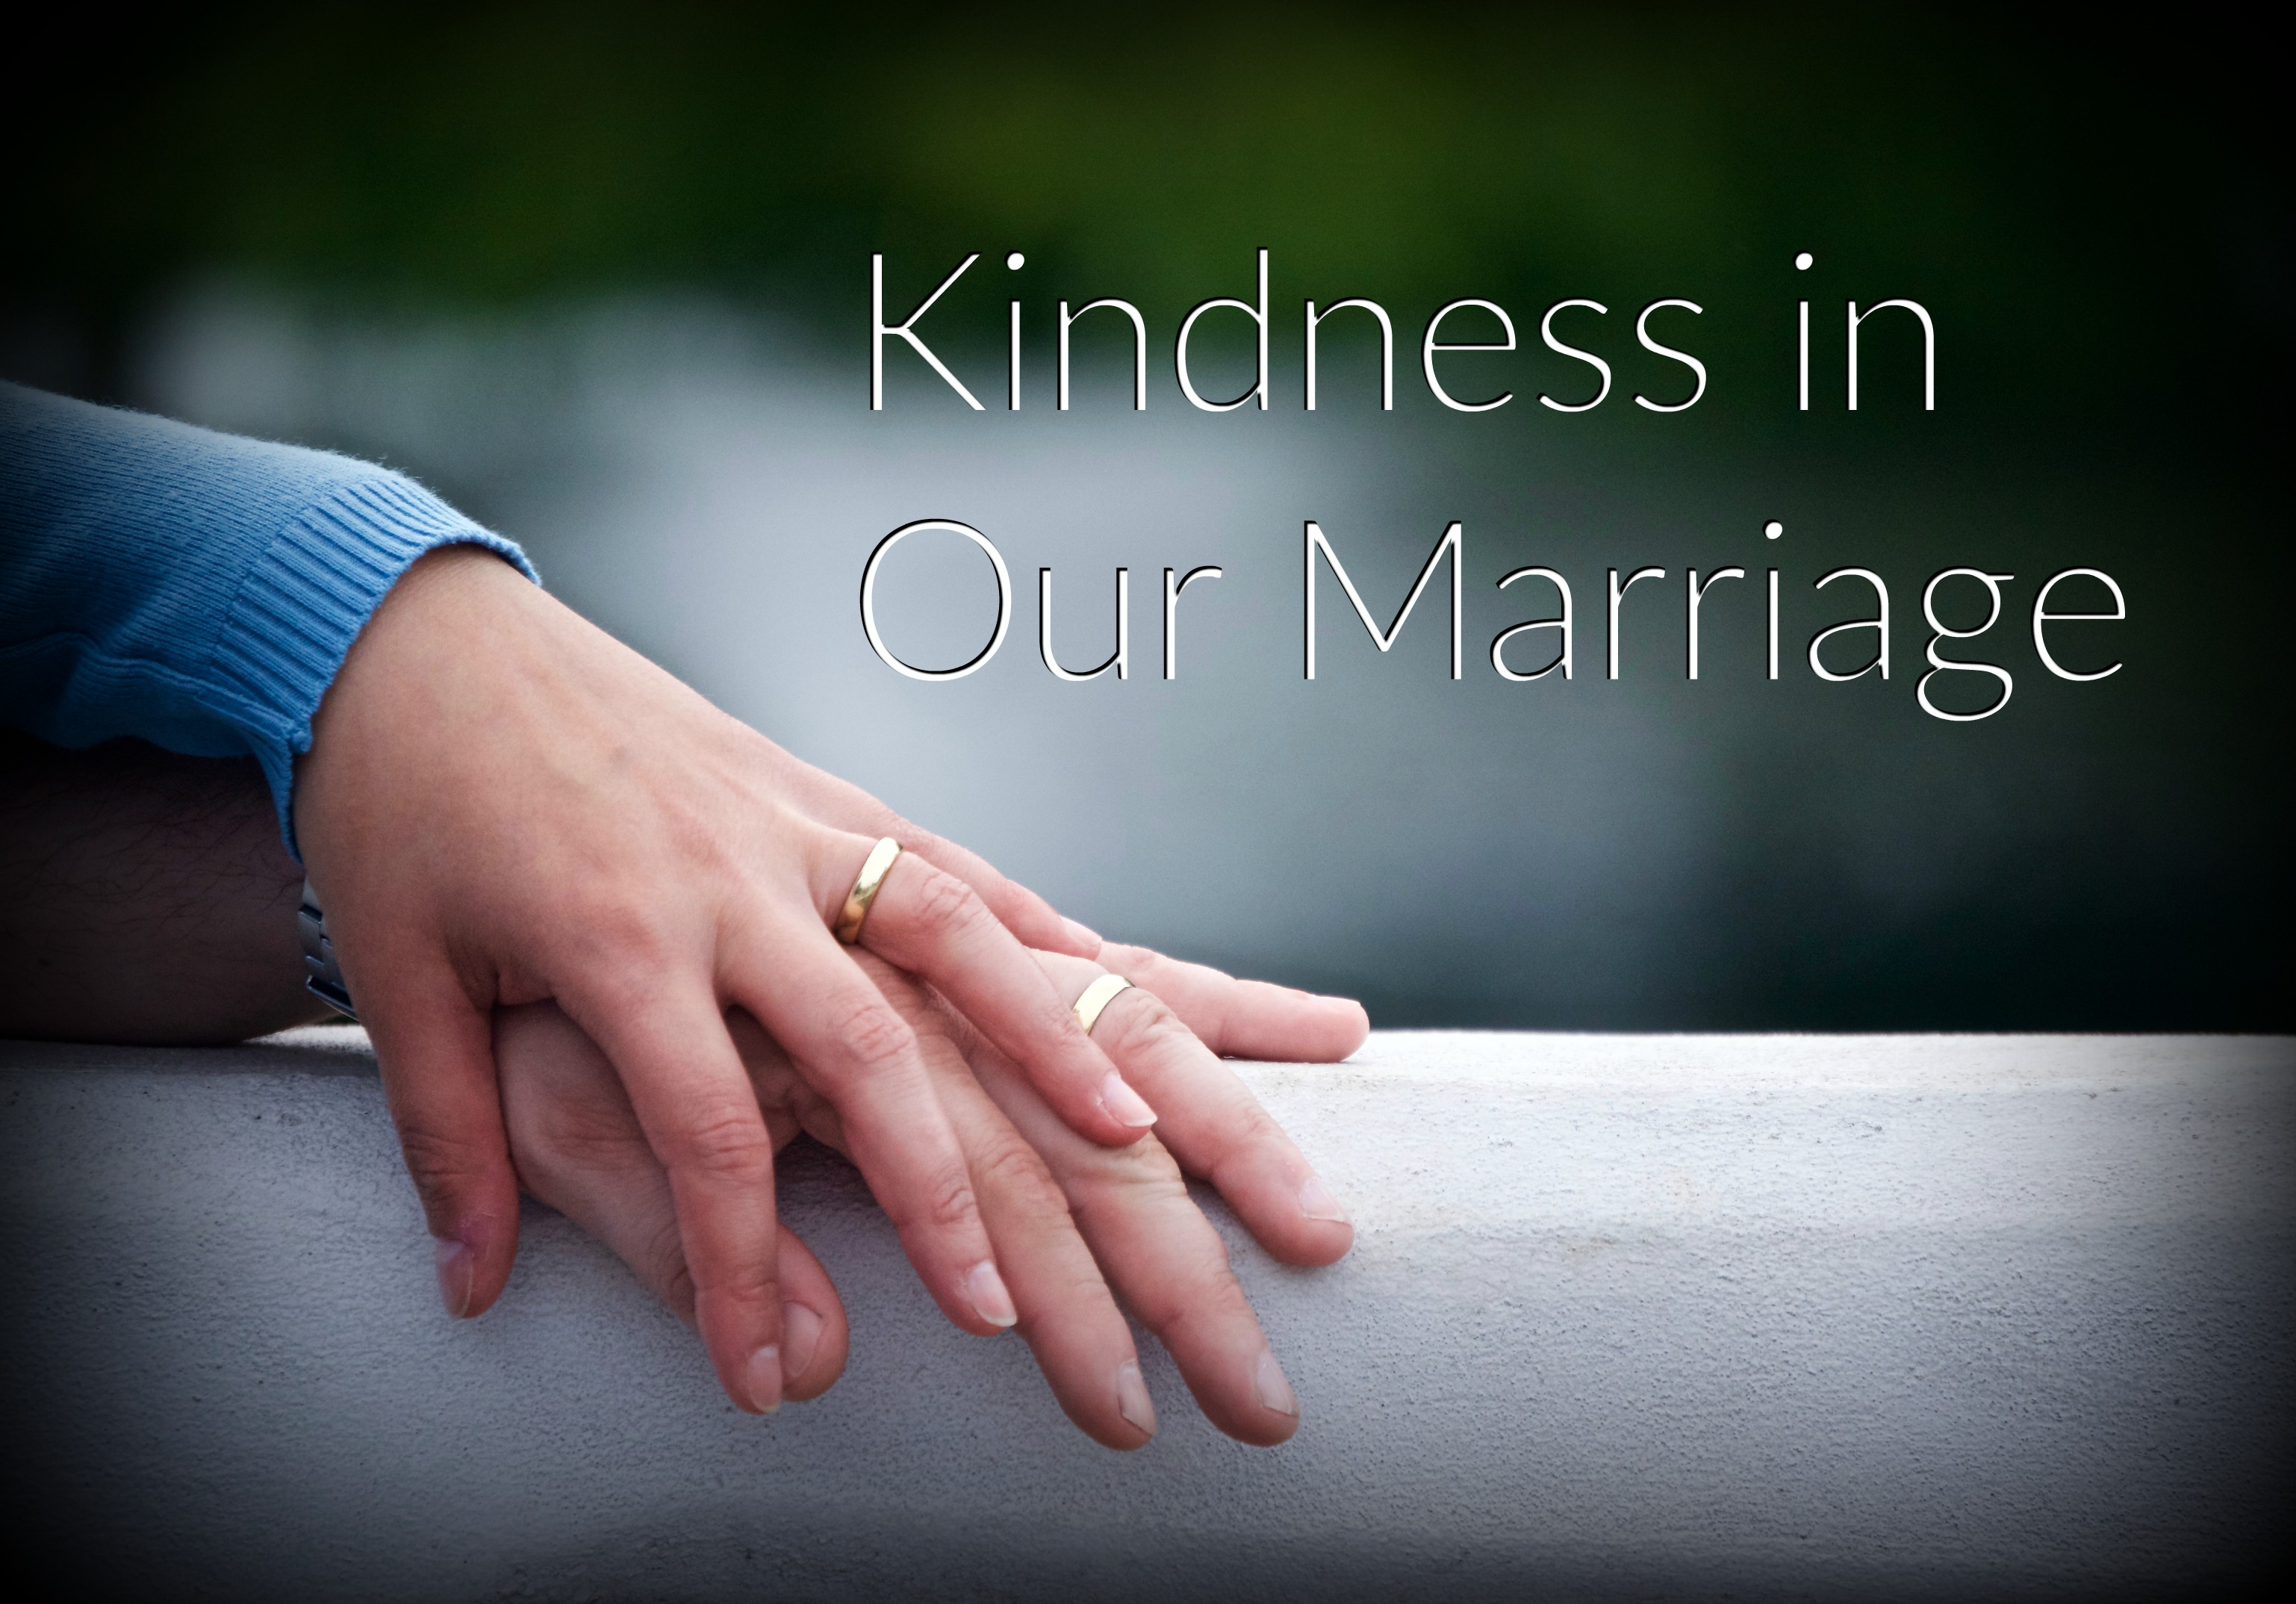 Kindness in marriage